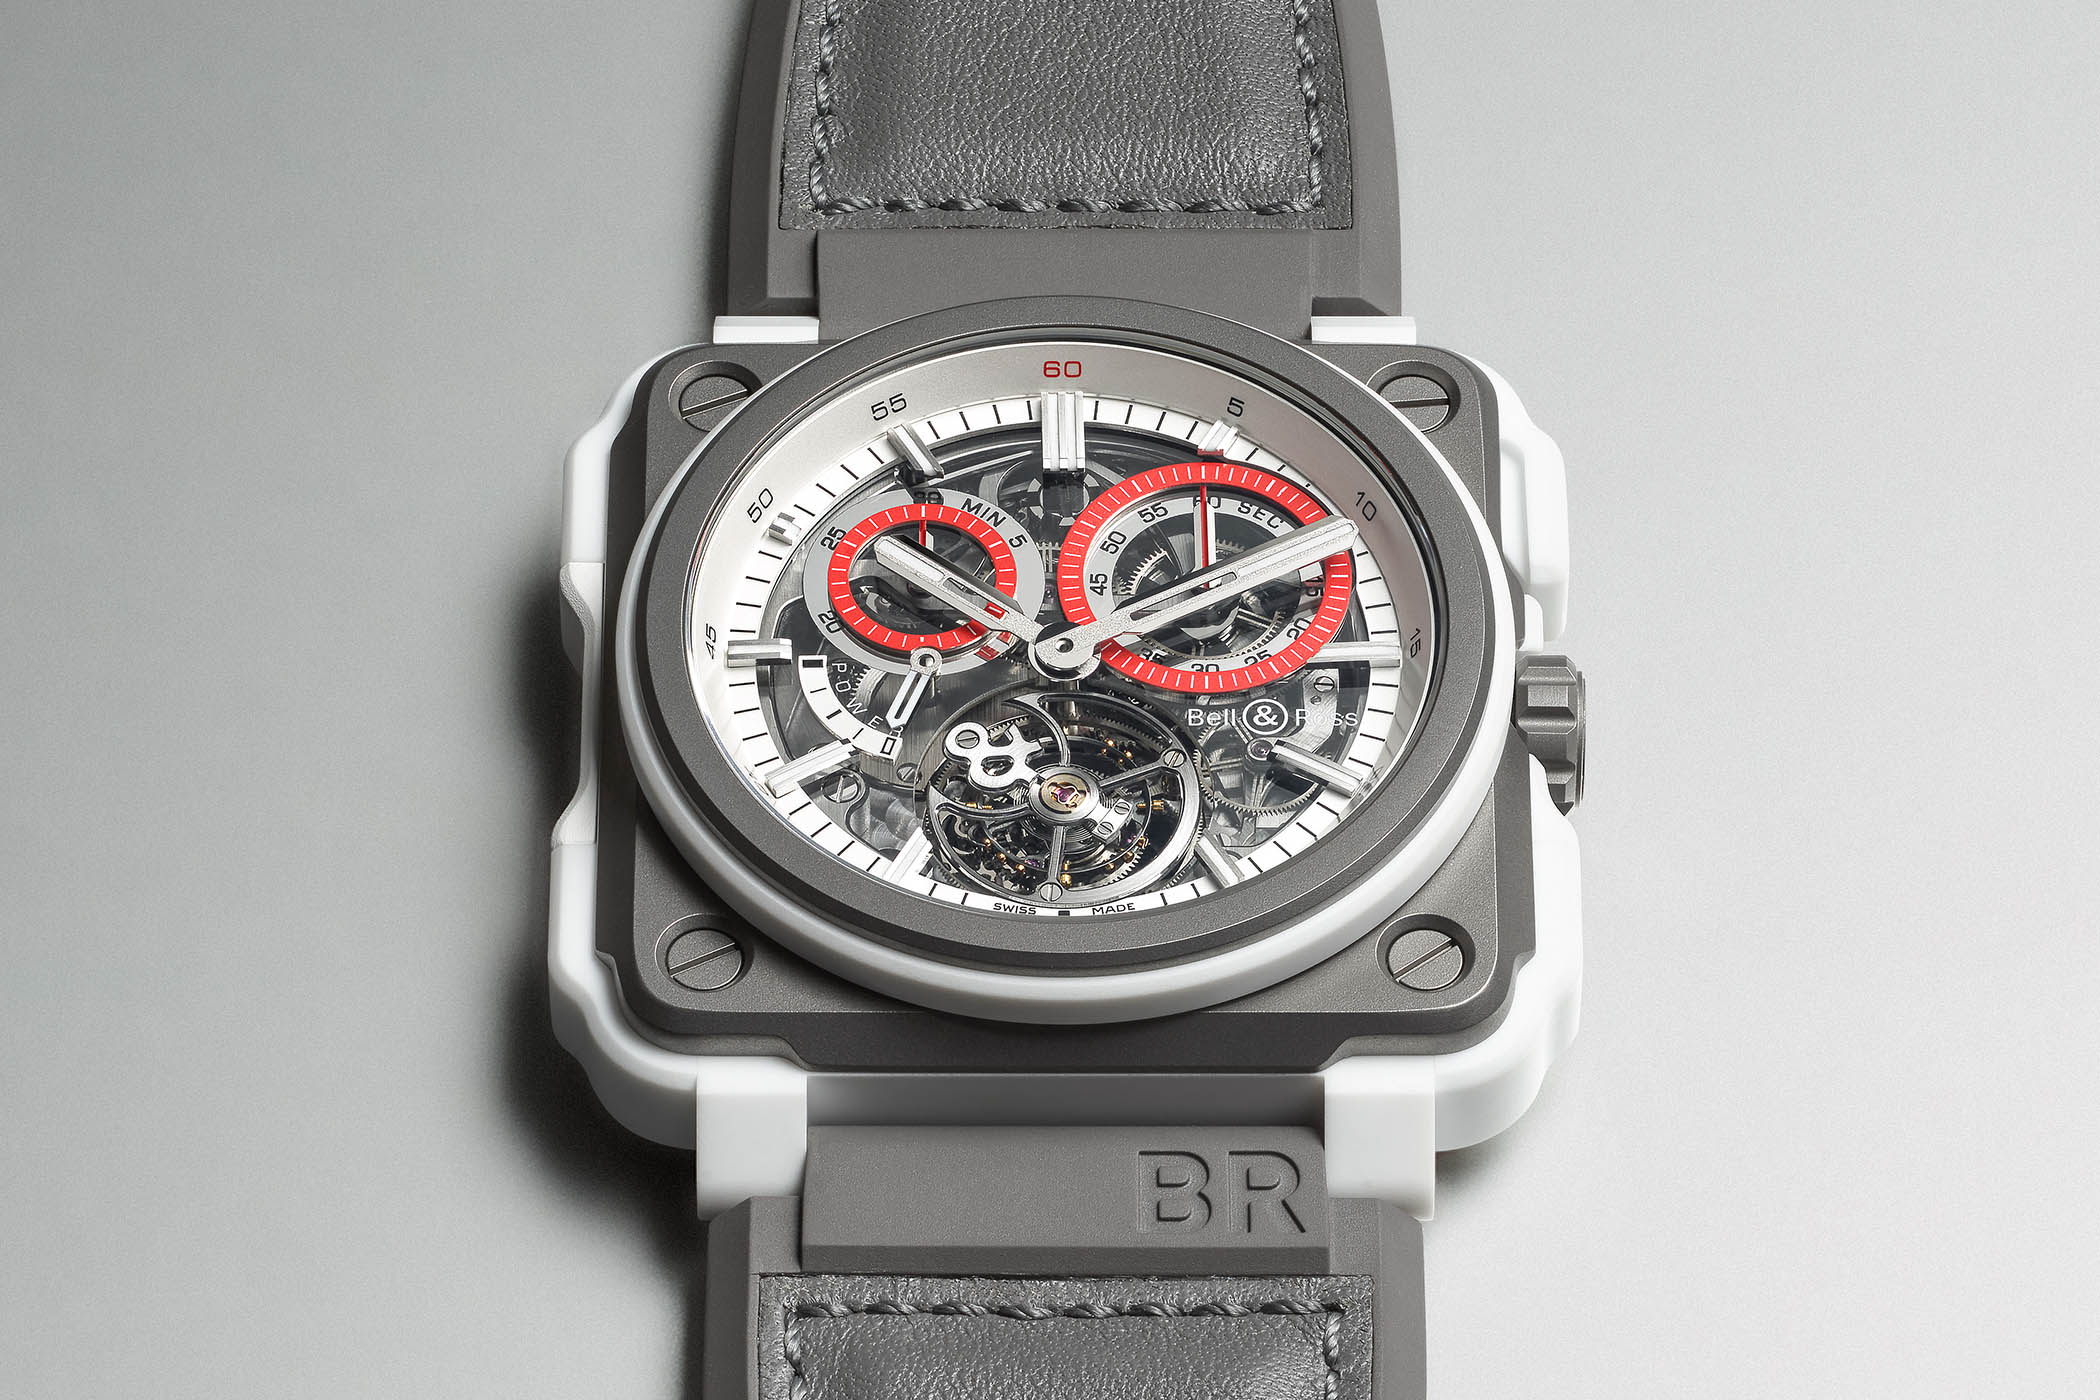 Bell & Ross BR-X1 White Hawk Chronograph Tourbillon Hand-wound Monopusher